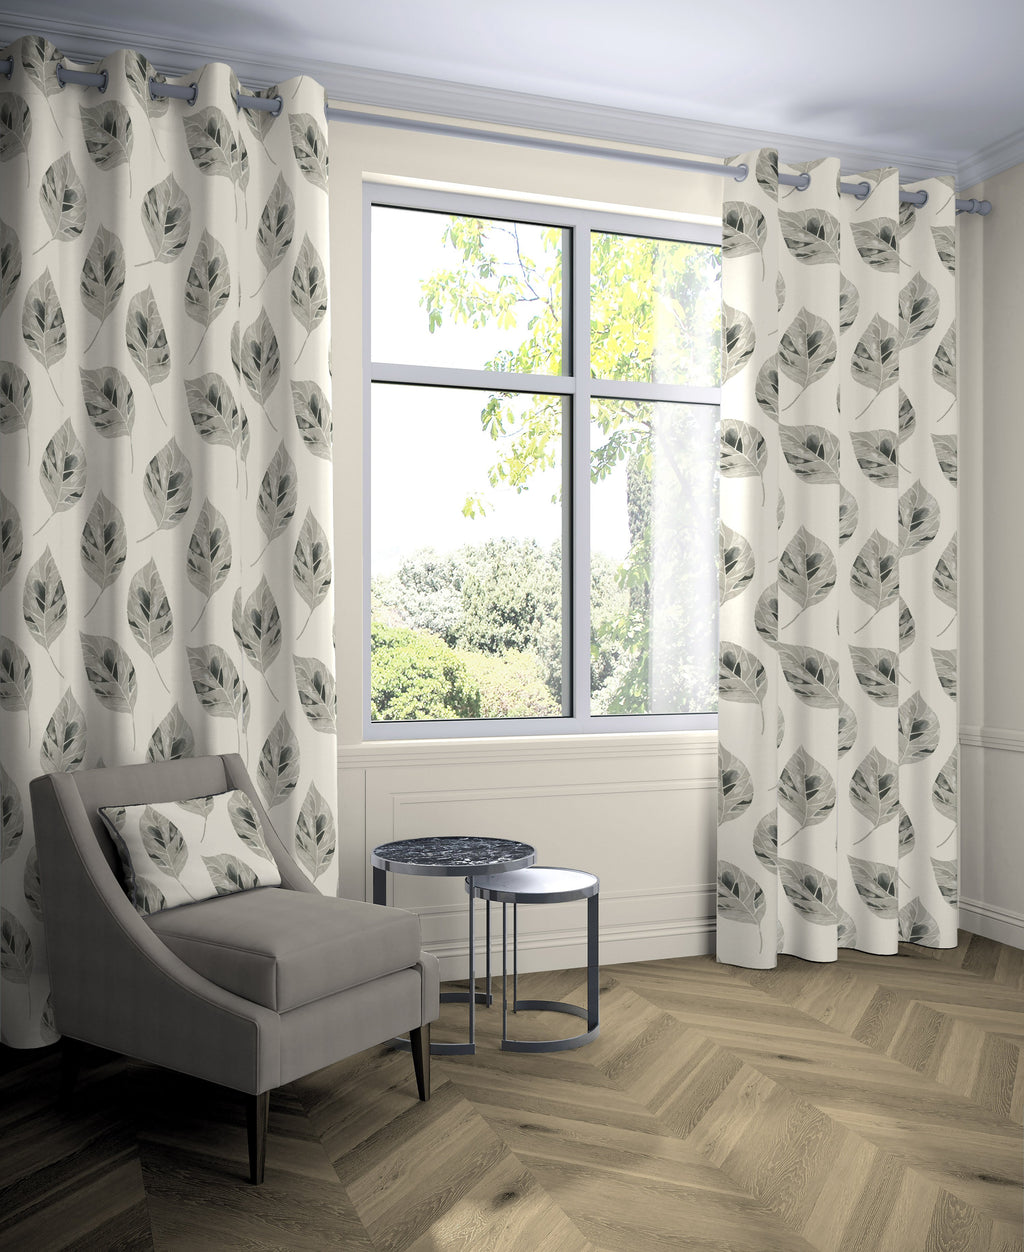 "McAlister Textiles Leaf Soft Grey Floral Cotton Print Curtains Tailored Curtains 116cm(w) x 137cm(d) (46"" x 54"")"